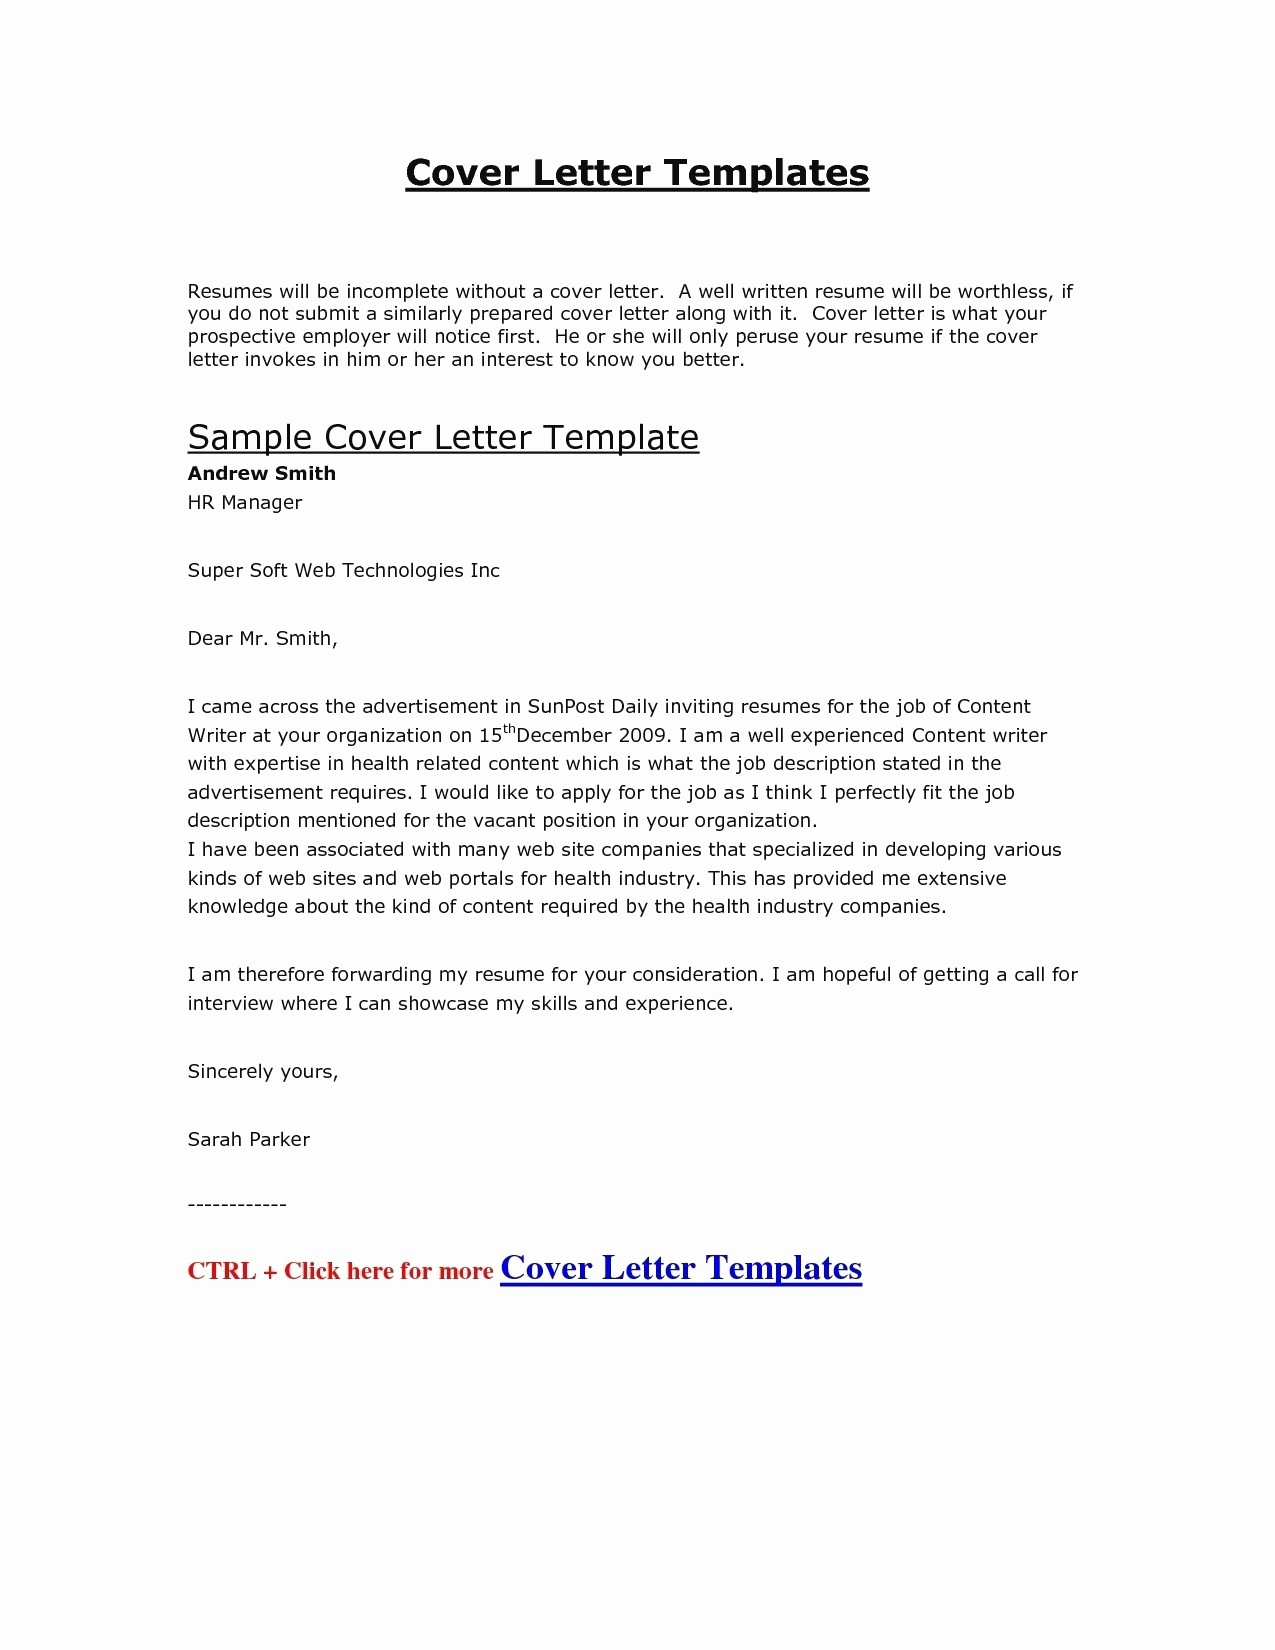 Writing A Cover Letter Template - Job Application Letter format Template Copy Cover Letter Template Hr